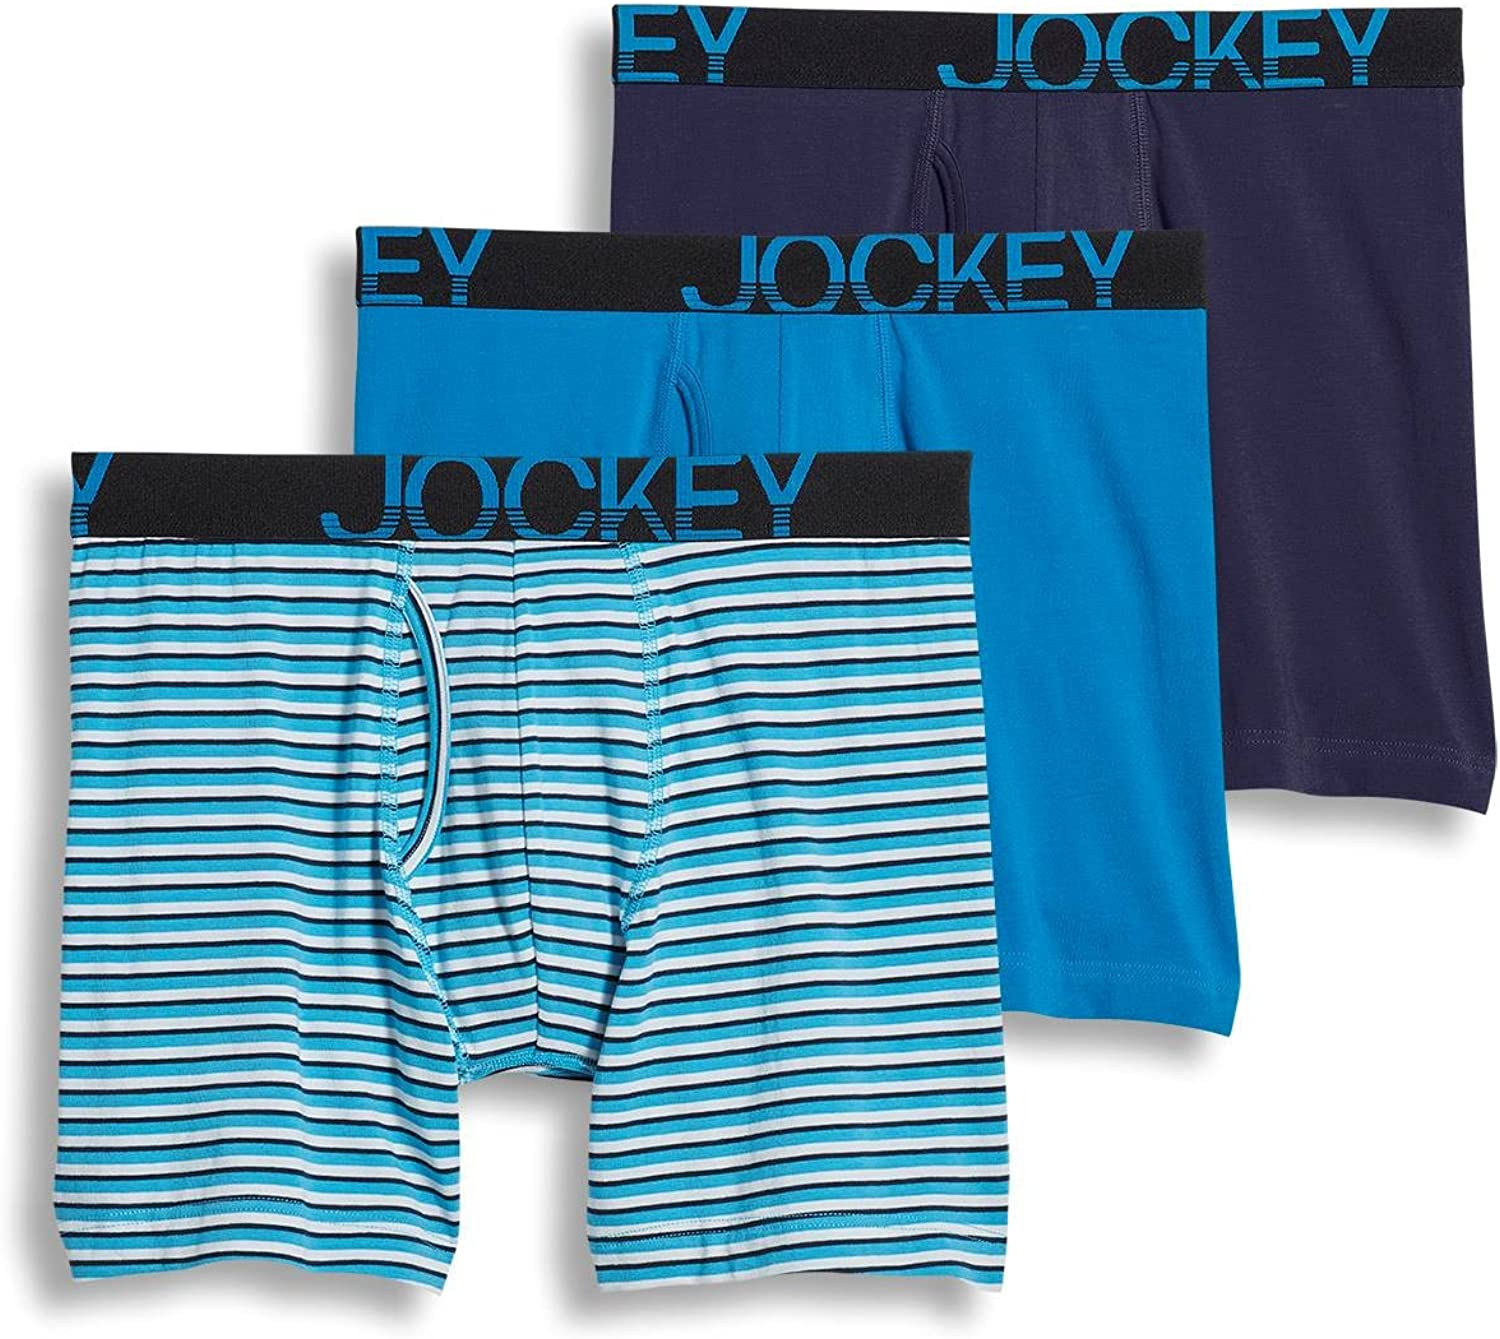 Jockey Men's Underwear ActiveStretch Midway Brief - 3 Pack